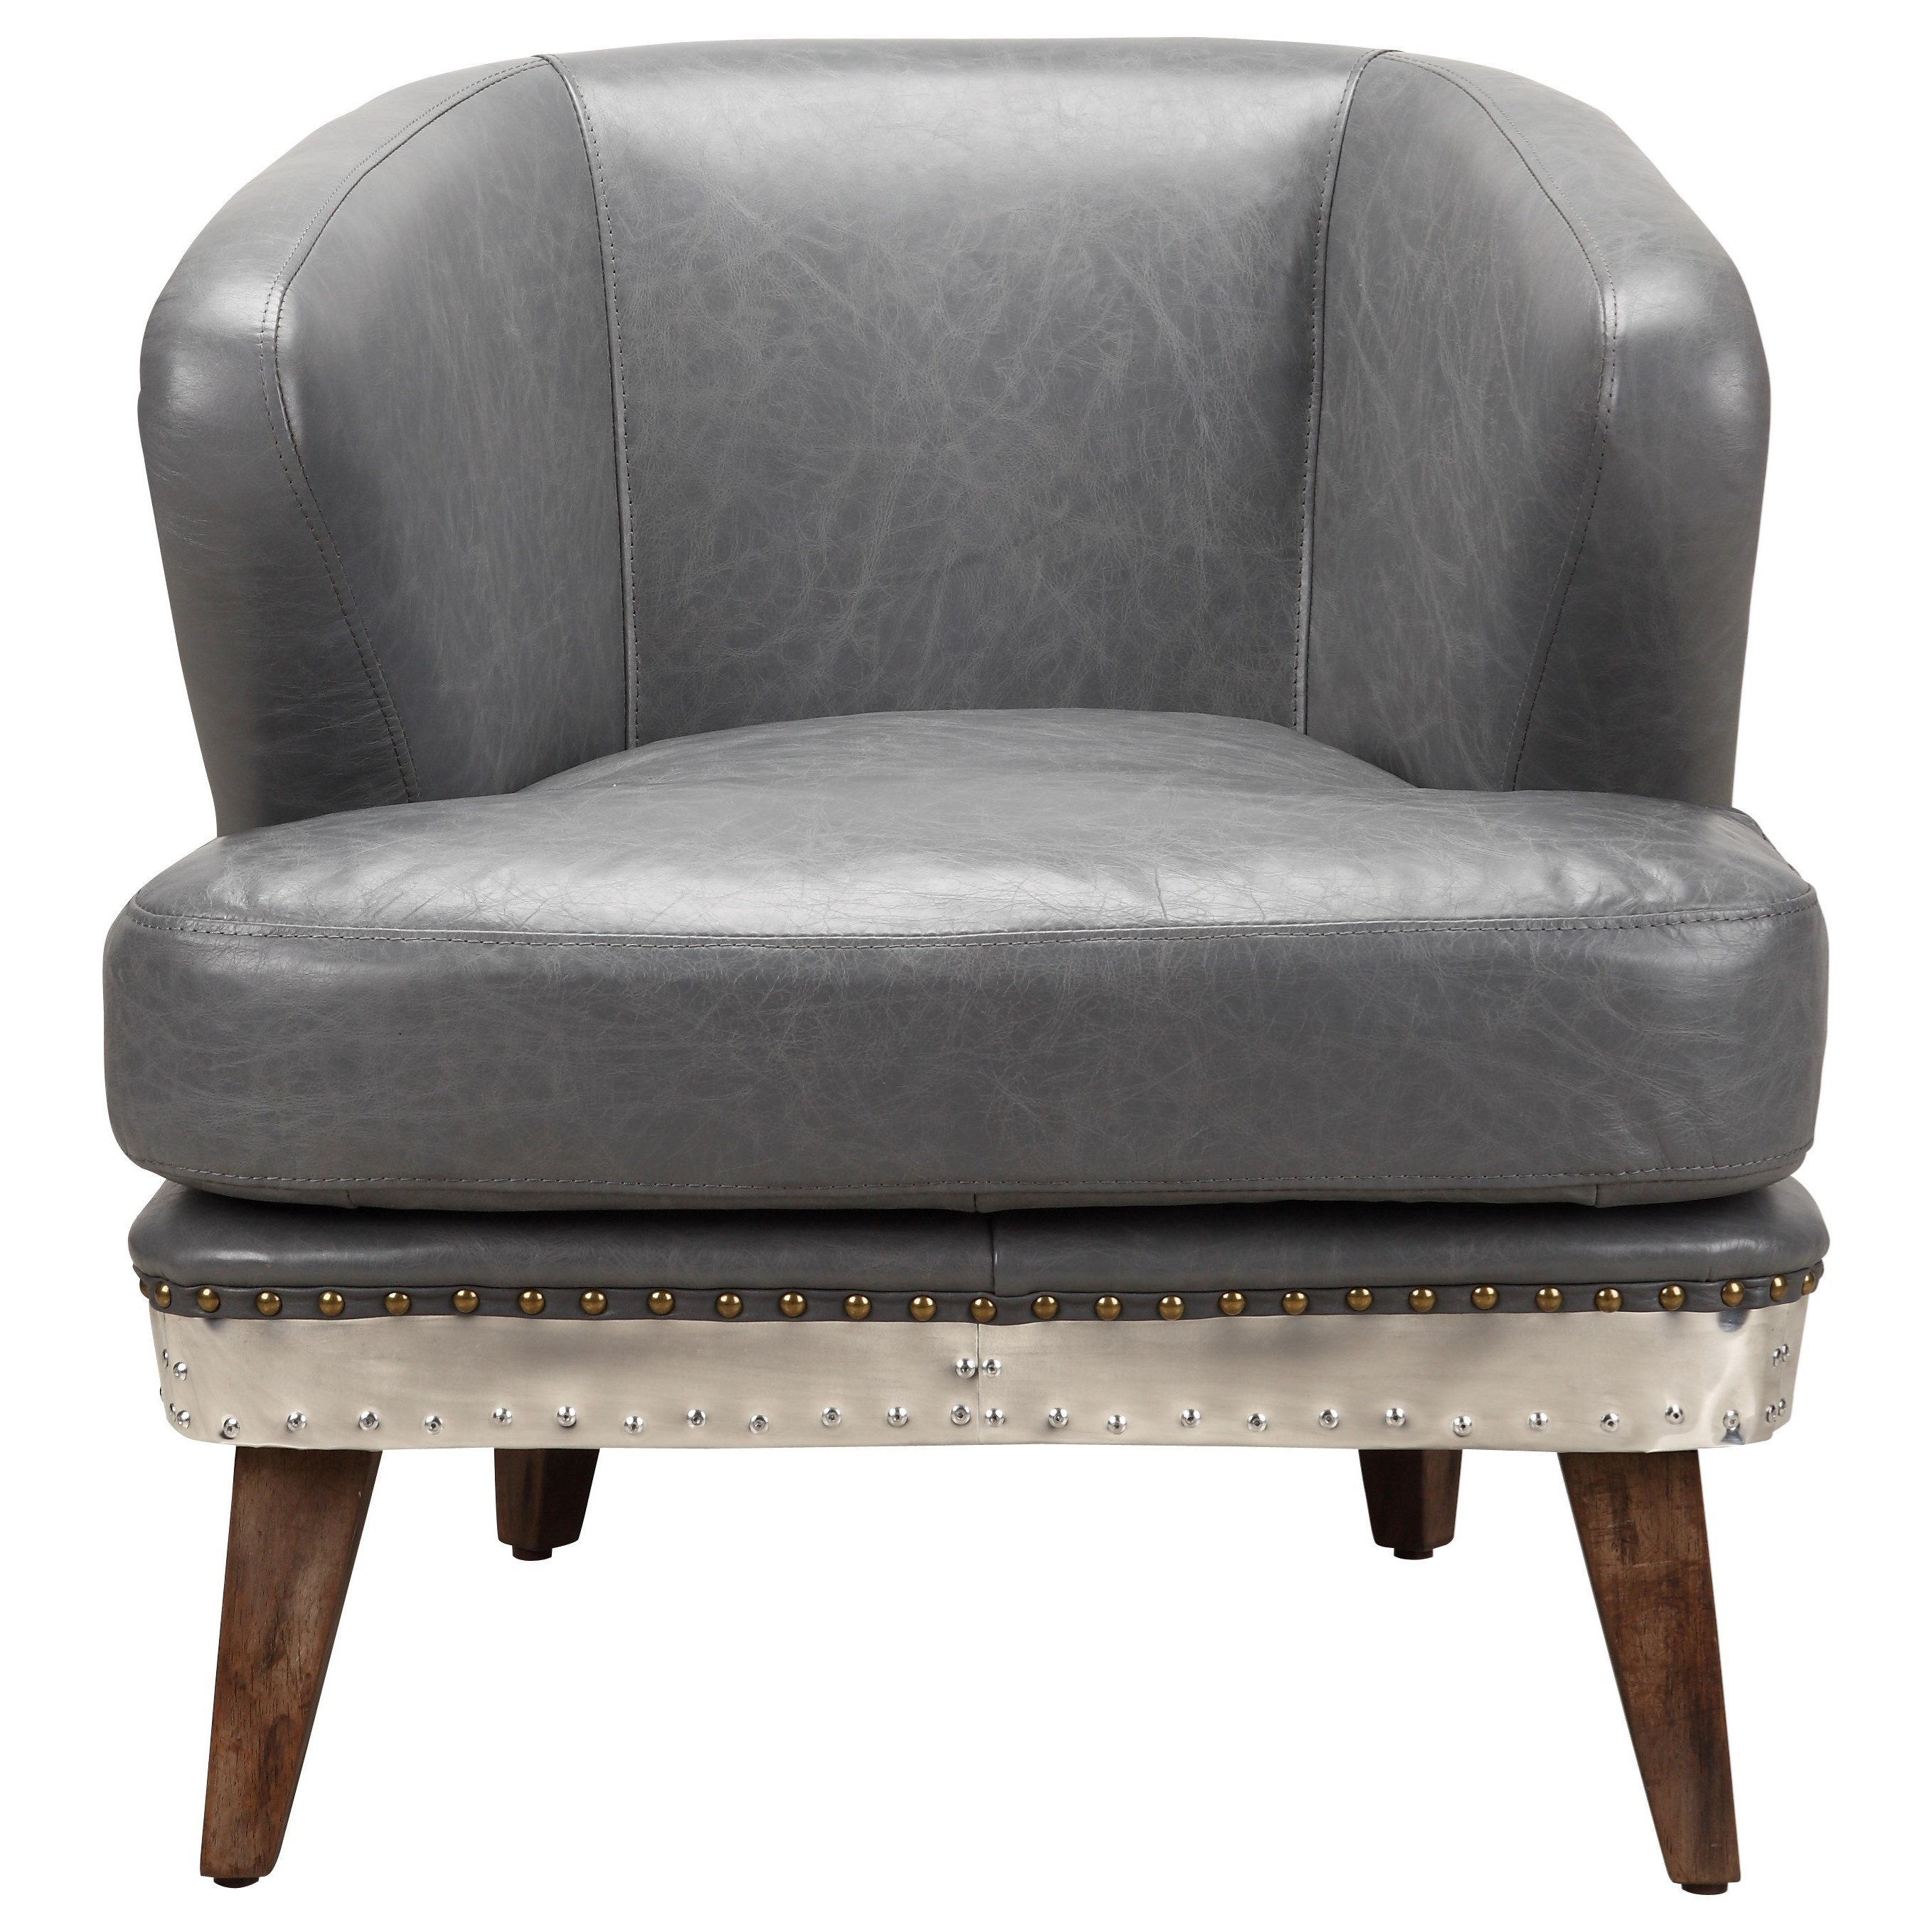 Cambridge Top Grain Leather Club Chair by Moe's Home Collection at Stoney Creek Furniture